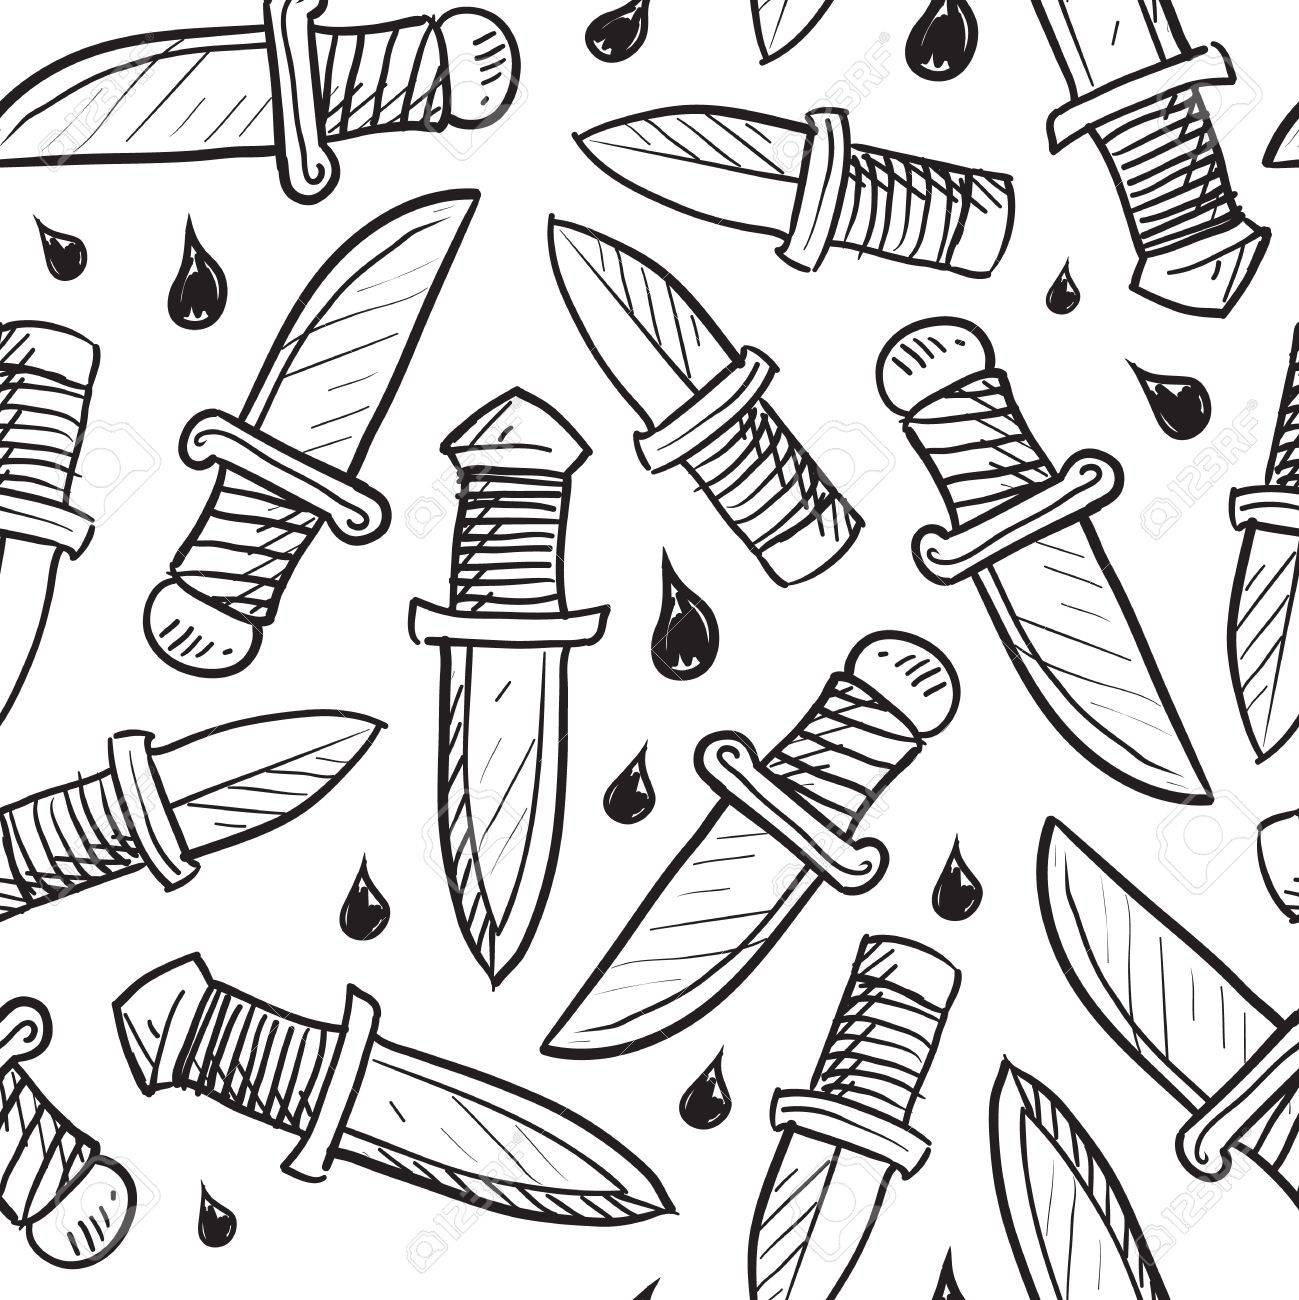 Doodle style knife background designed to be tiled  Vector format Stock Photo - 14559470